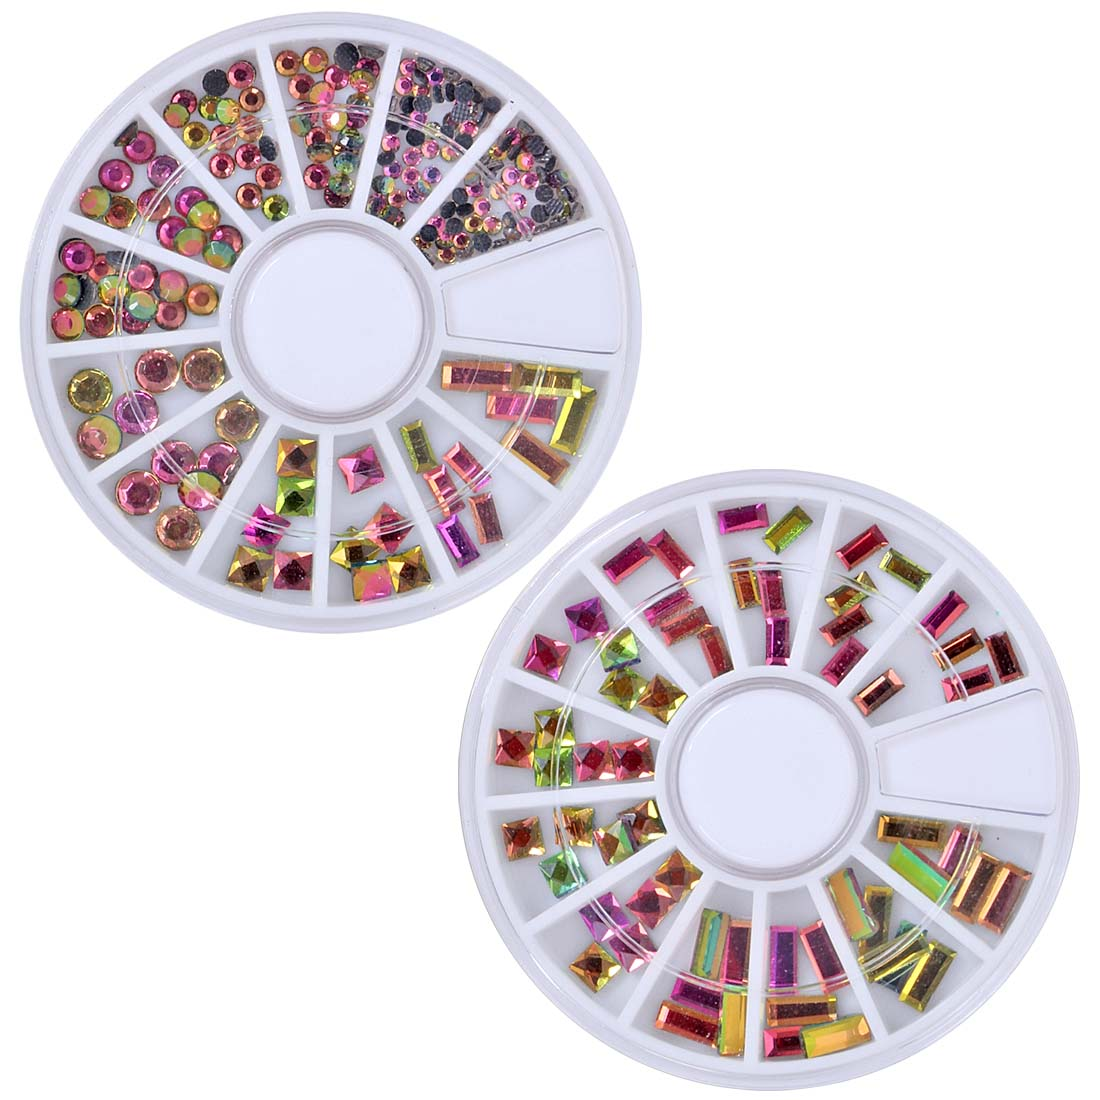 BMC Pinkish Green Chameleon Color Changing Nail Art Studs - 2 Wheel Set: Rectangles, Squares, Rounds